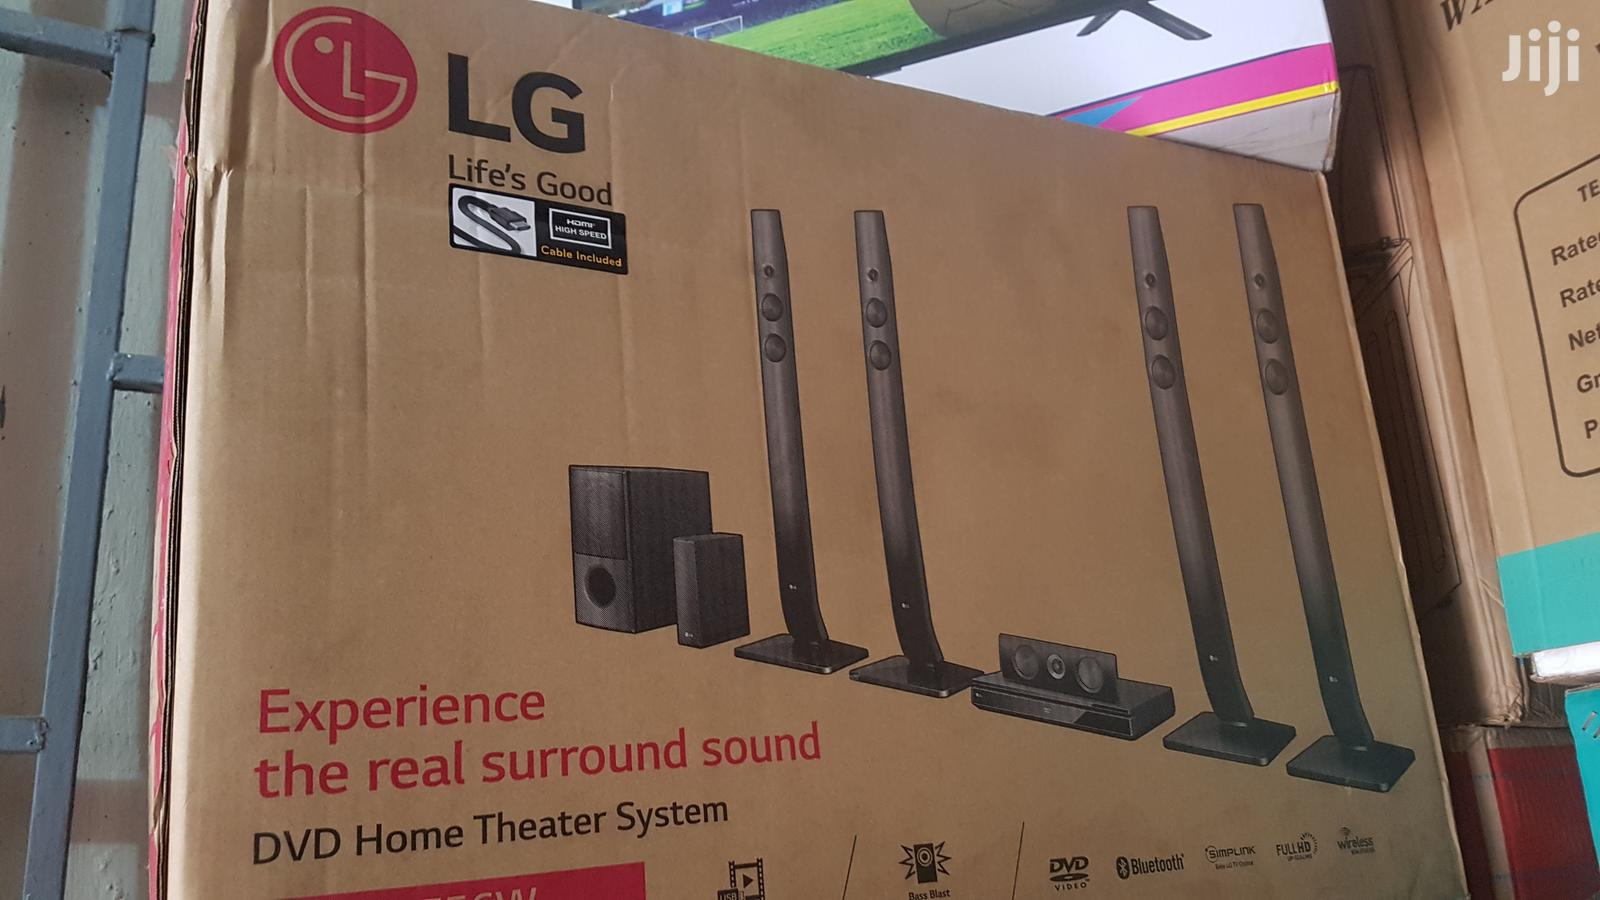 LG Home Theater System Wireless